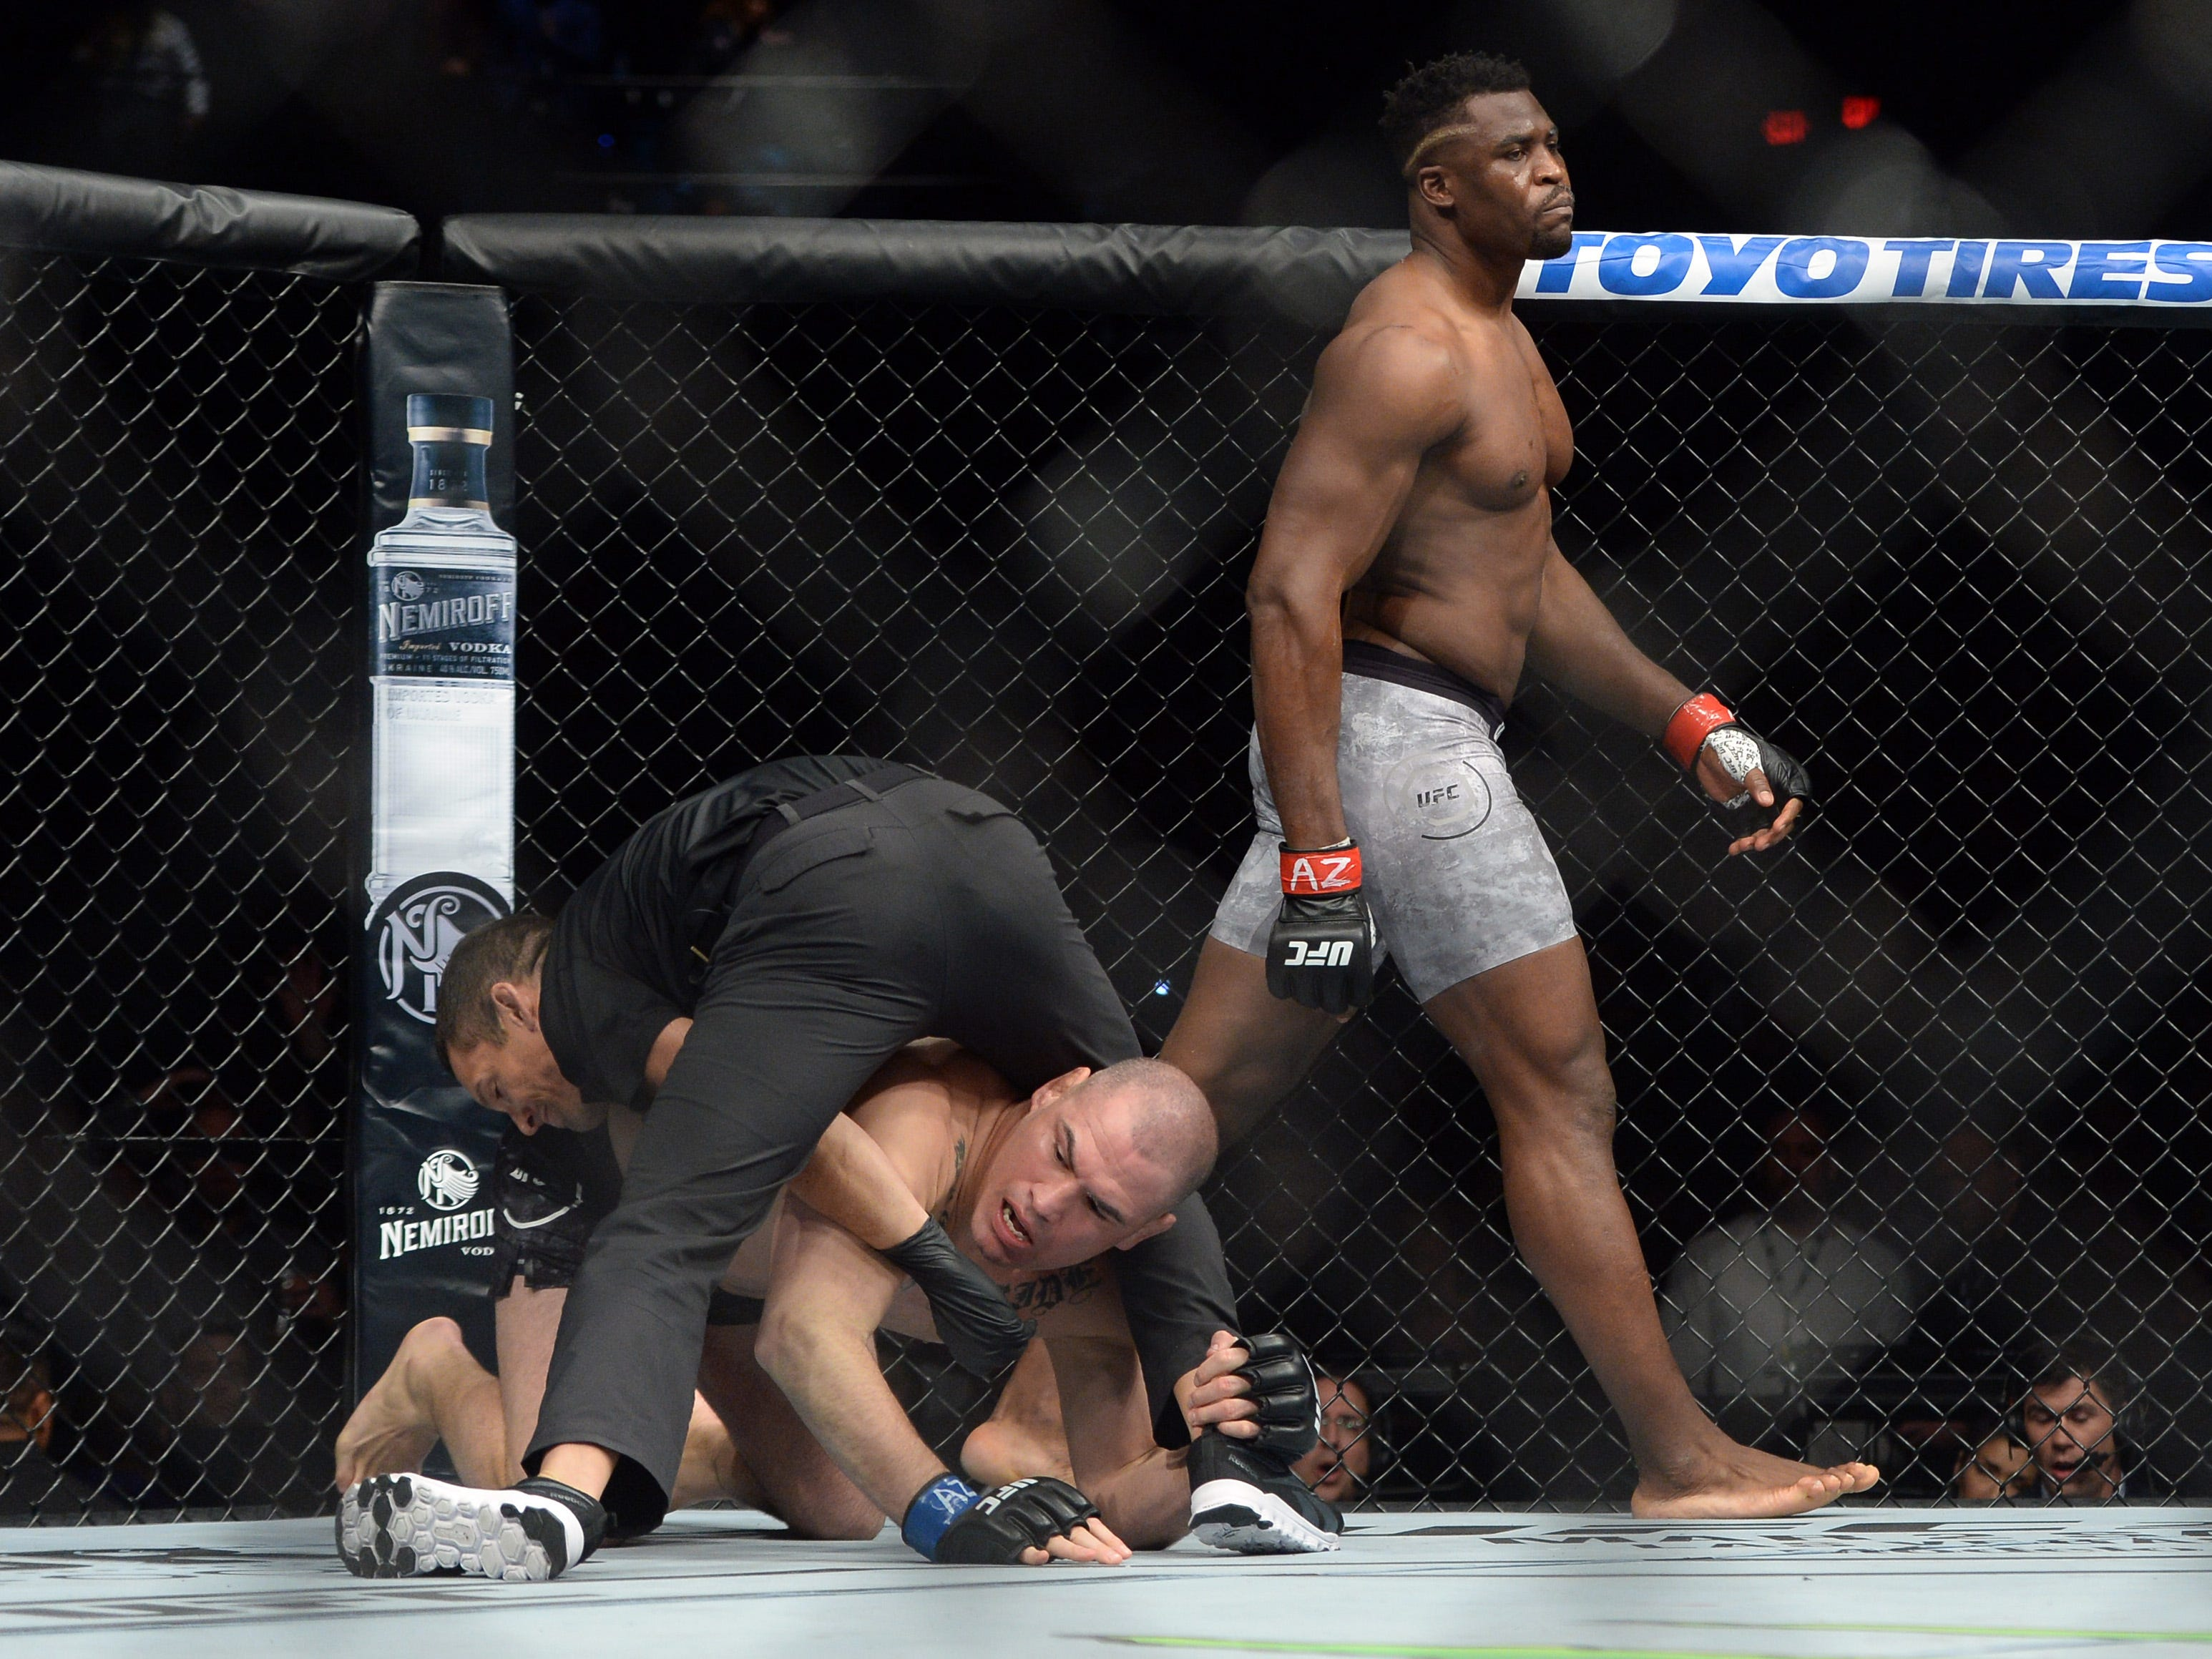 Francis Ngannou walks away after finishing Cain Velasquez  just 26 seconds into the first round of their heavyweight fight at UFC on ESPN at Talking Stick Resort Arena.